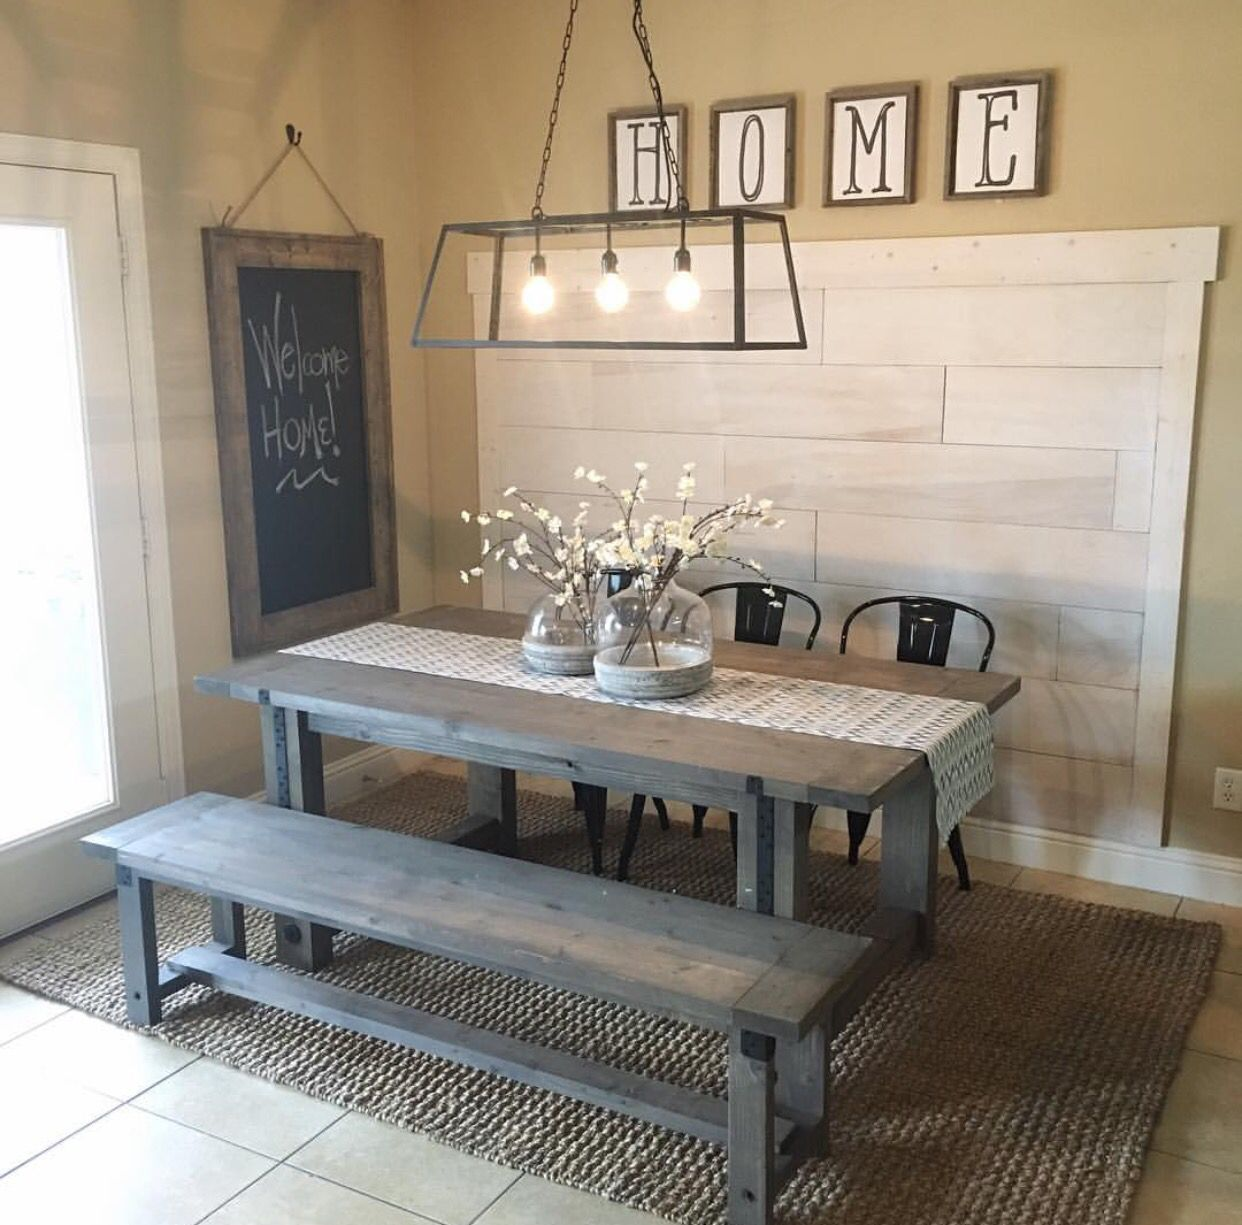 Farmhouse shabby chic dining table rustic wood picnic Kitchen bench lighting ideas